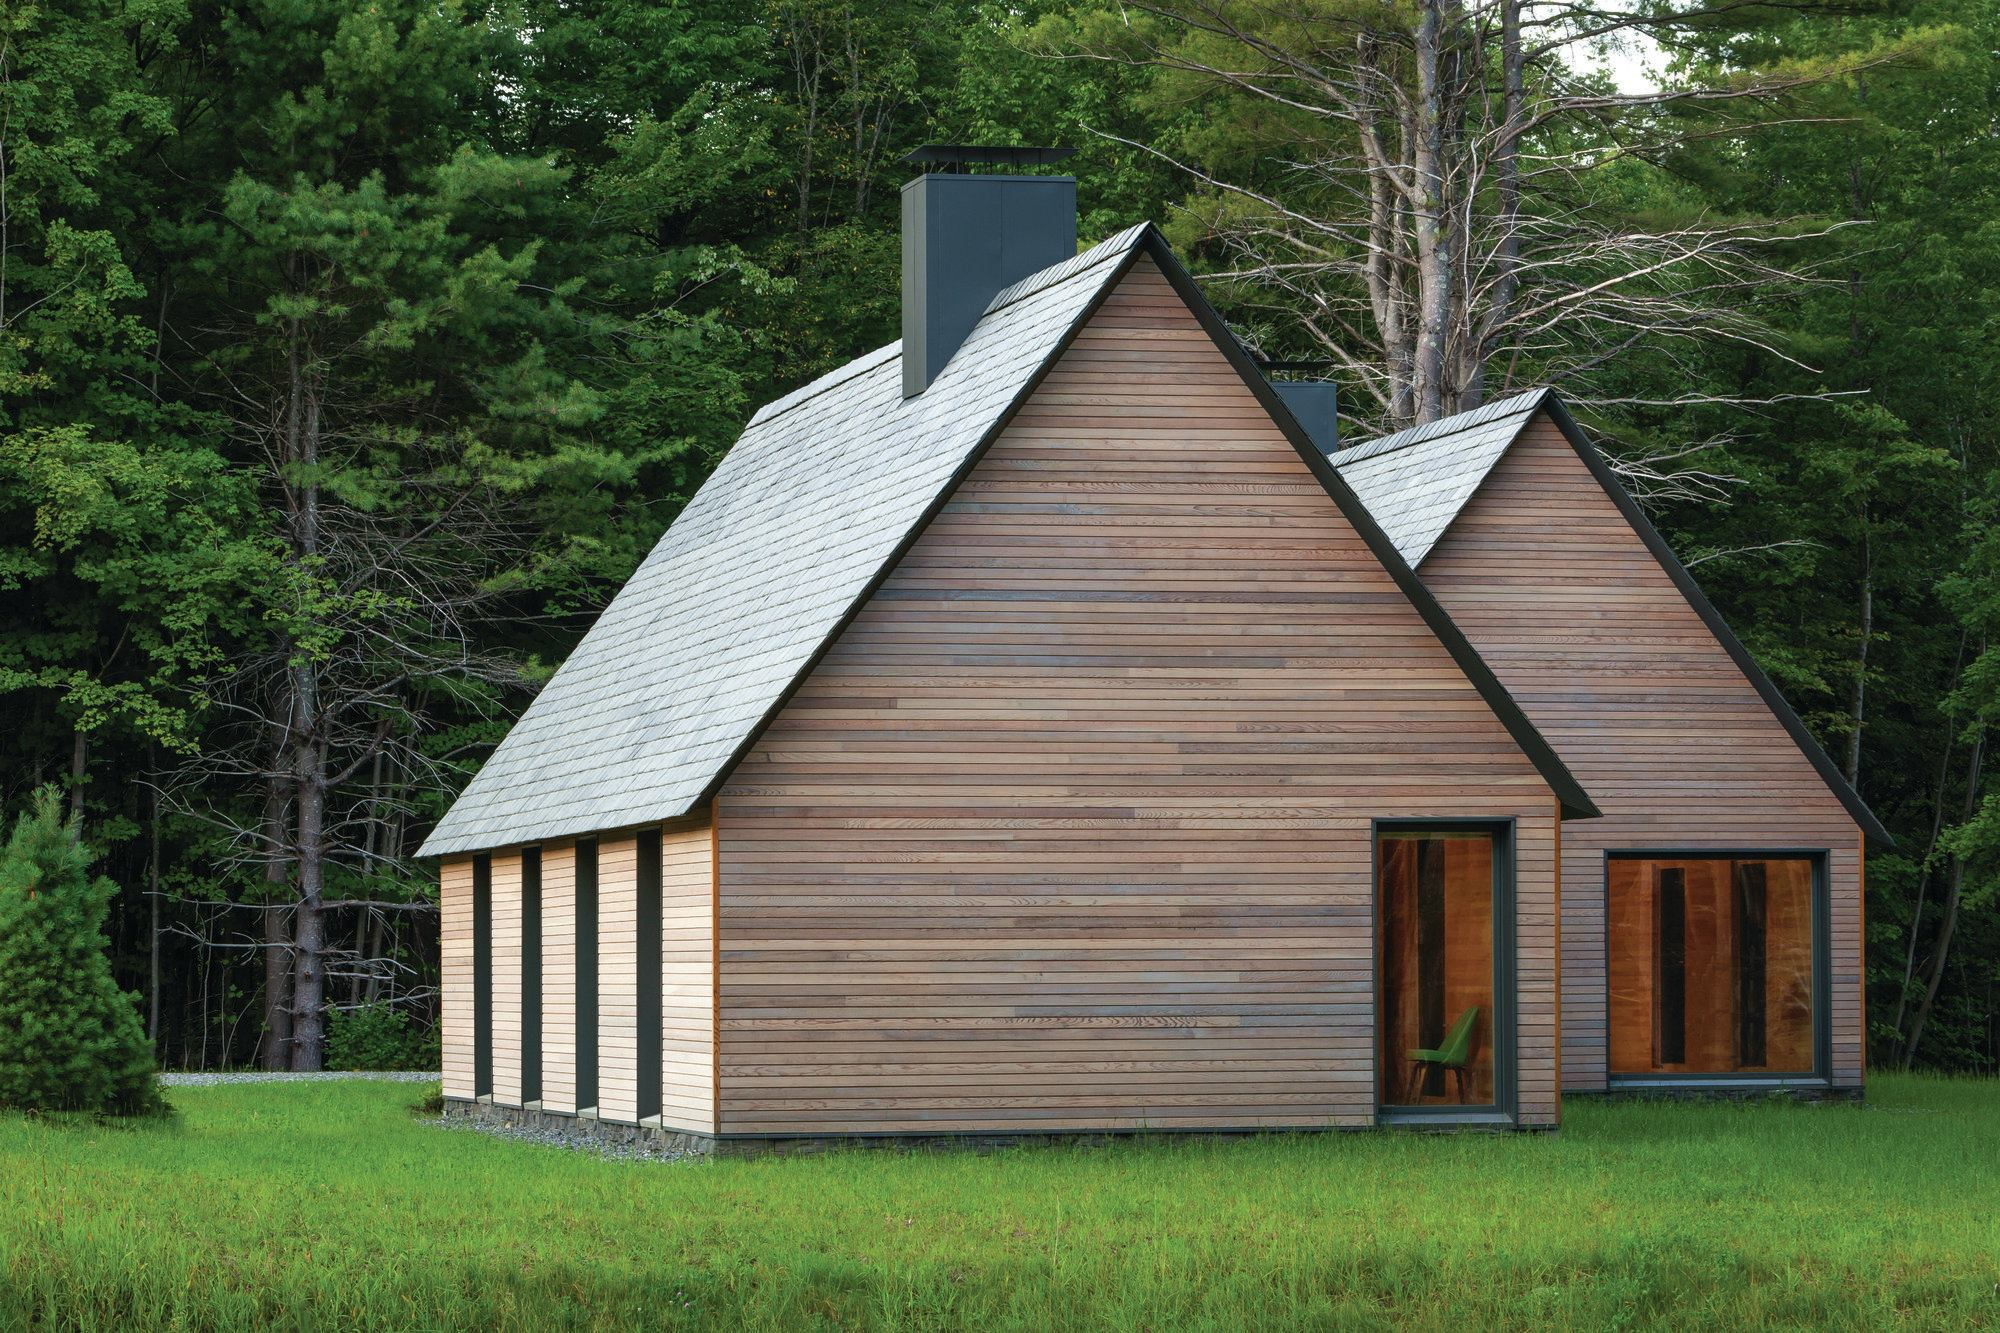 Marlboro music five cottages designed by hga architect for Home building magazines